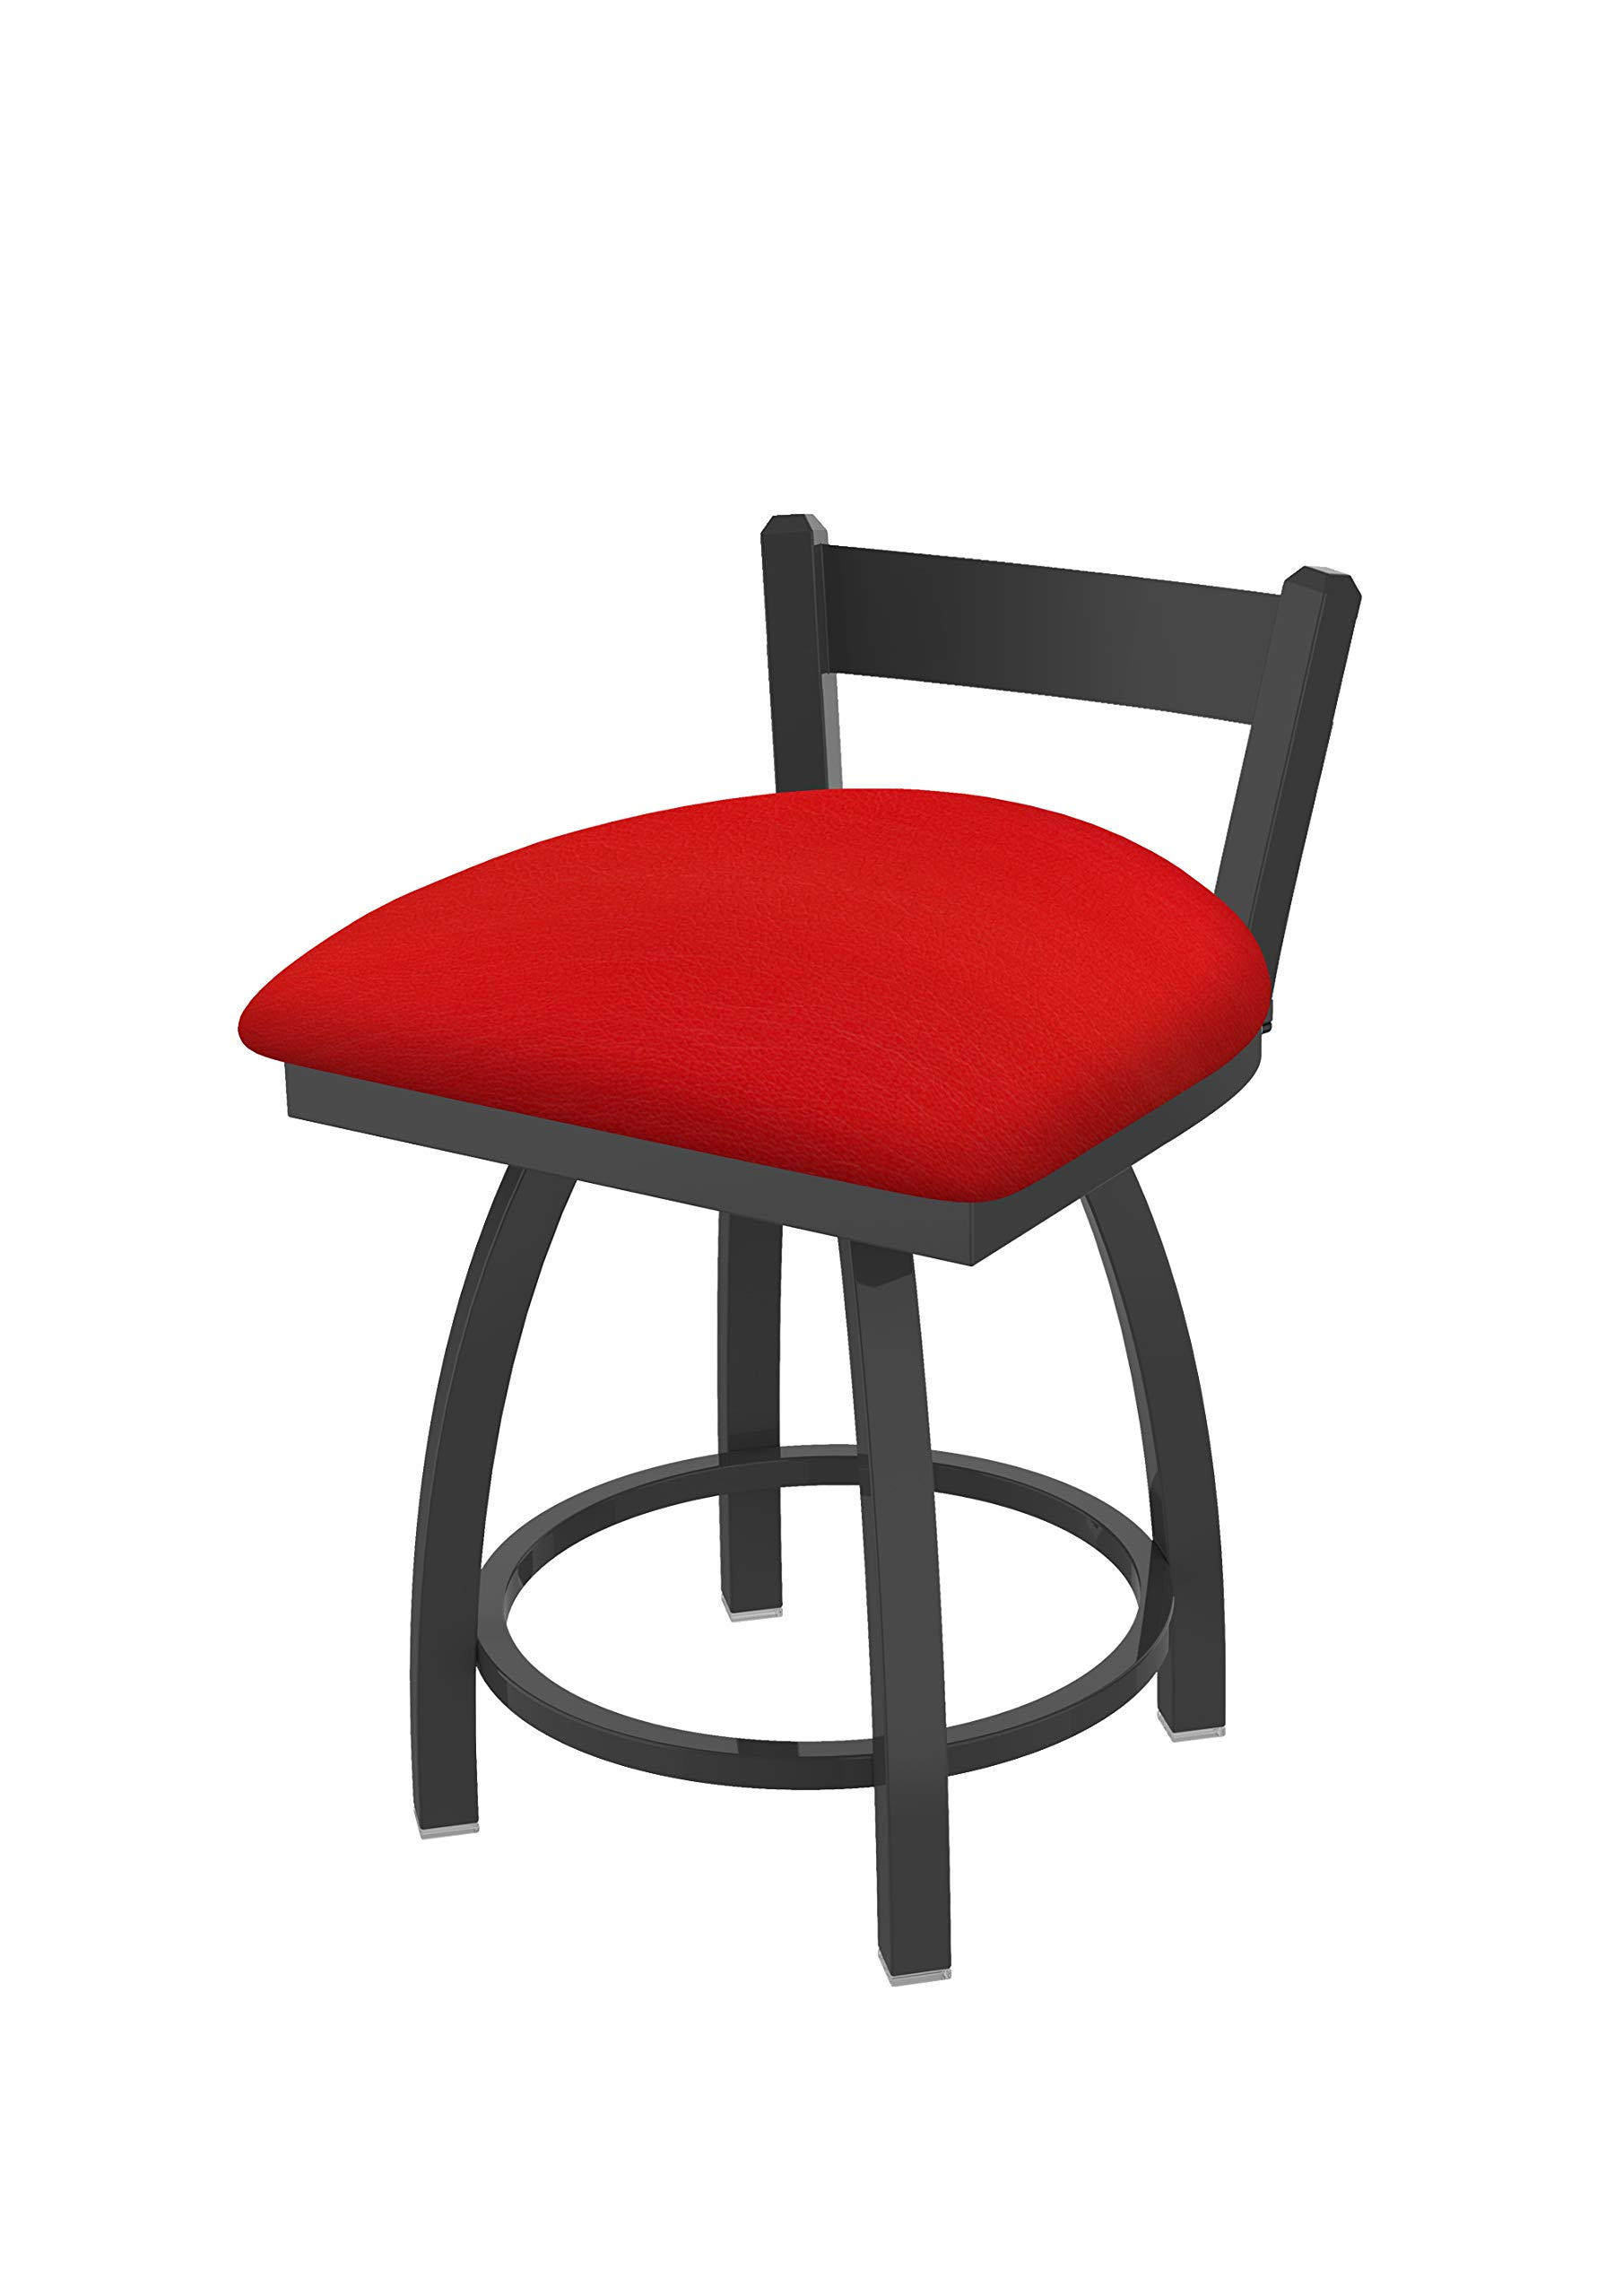 Holland Bar Stool Co. 82118PW011 821 Catalina 18'' Low Back Swivel Vanity Pewter Finish and Canter Red Seat Bar Stool,